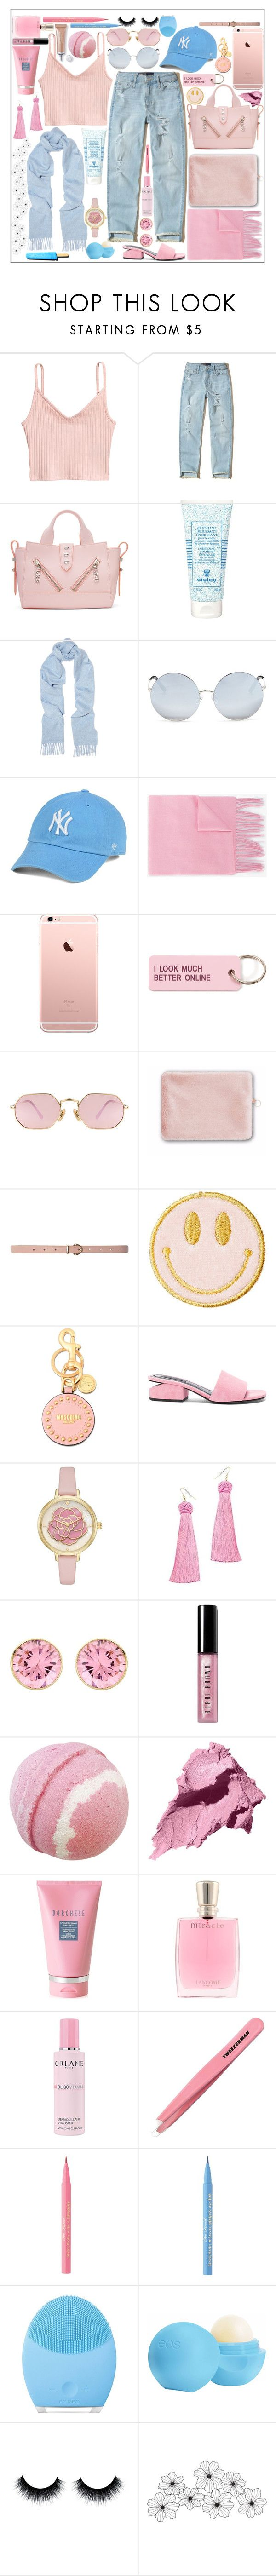 """Pinks and blues//Lucy"" by lucylime ❤ liked on Polyvore featuring Hollister Co., Kenzo, Sisley, Johnstons of Elgin, Matthew Williamson, '47 Brand, Gucci, Various Projects, LMNT and Tom Dixon"